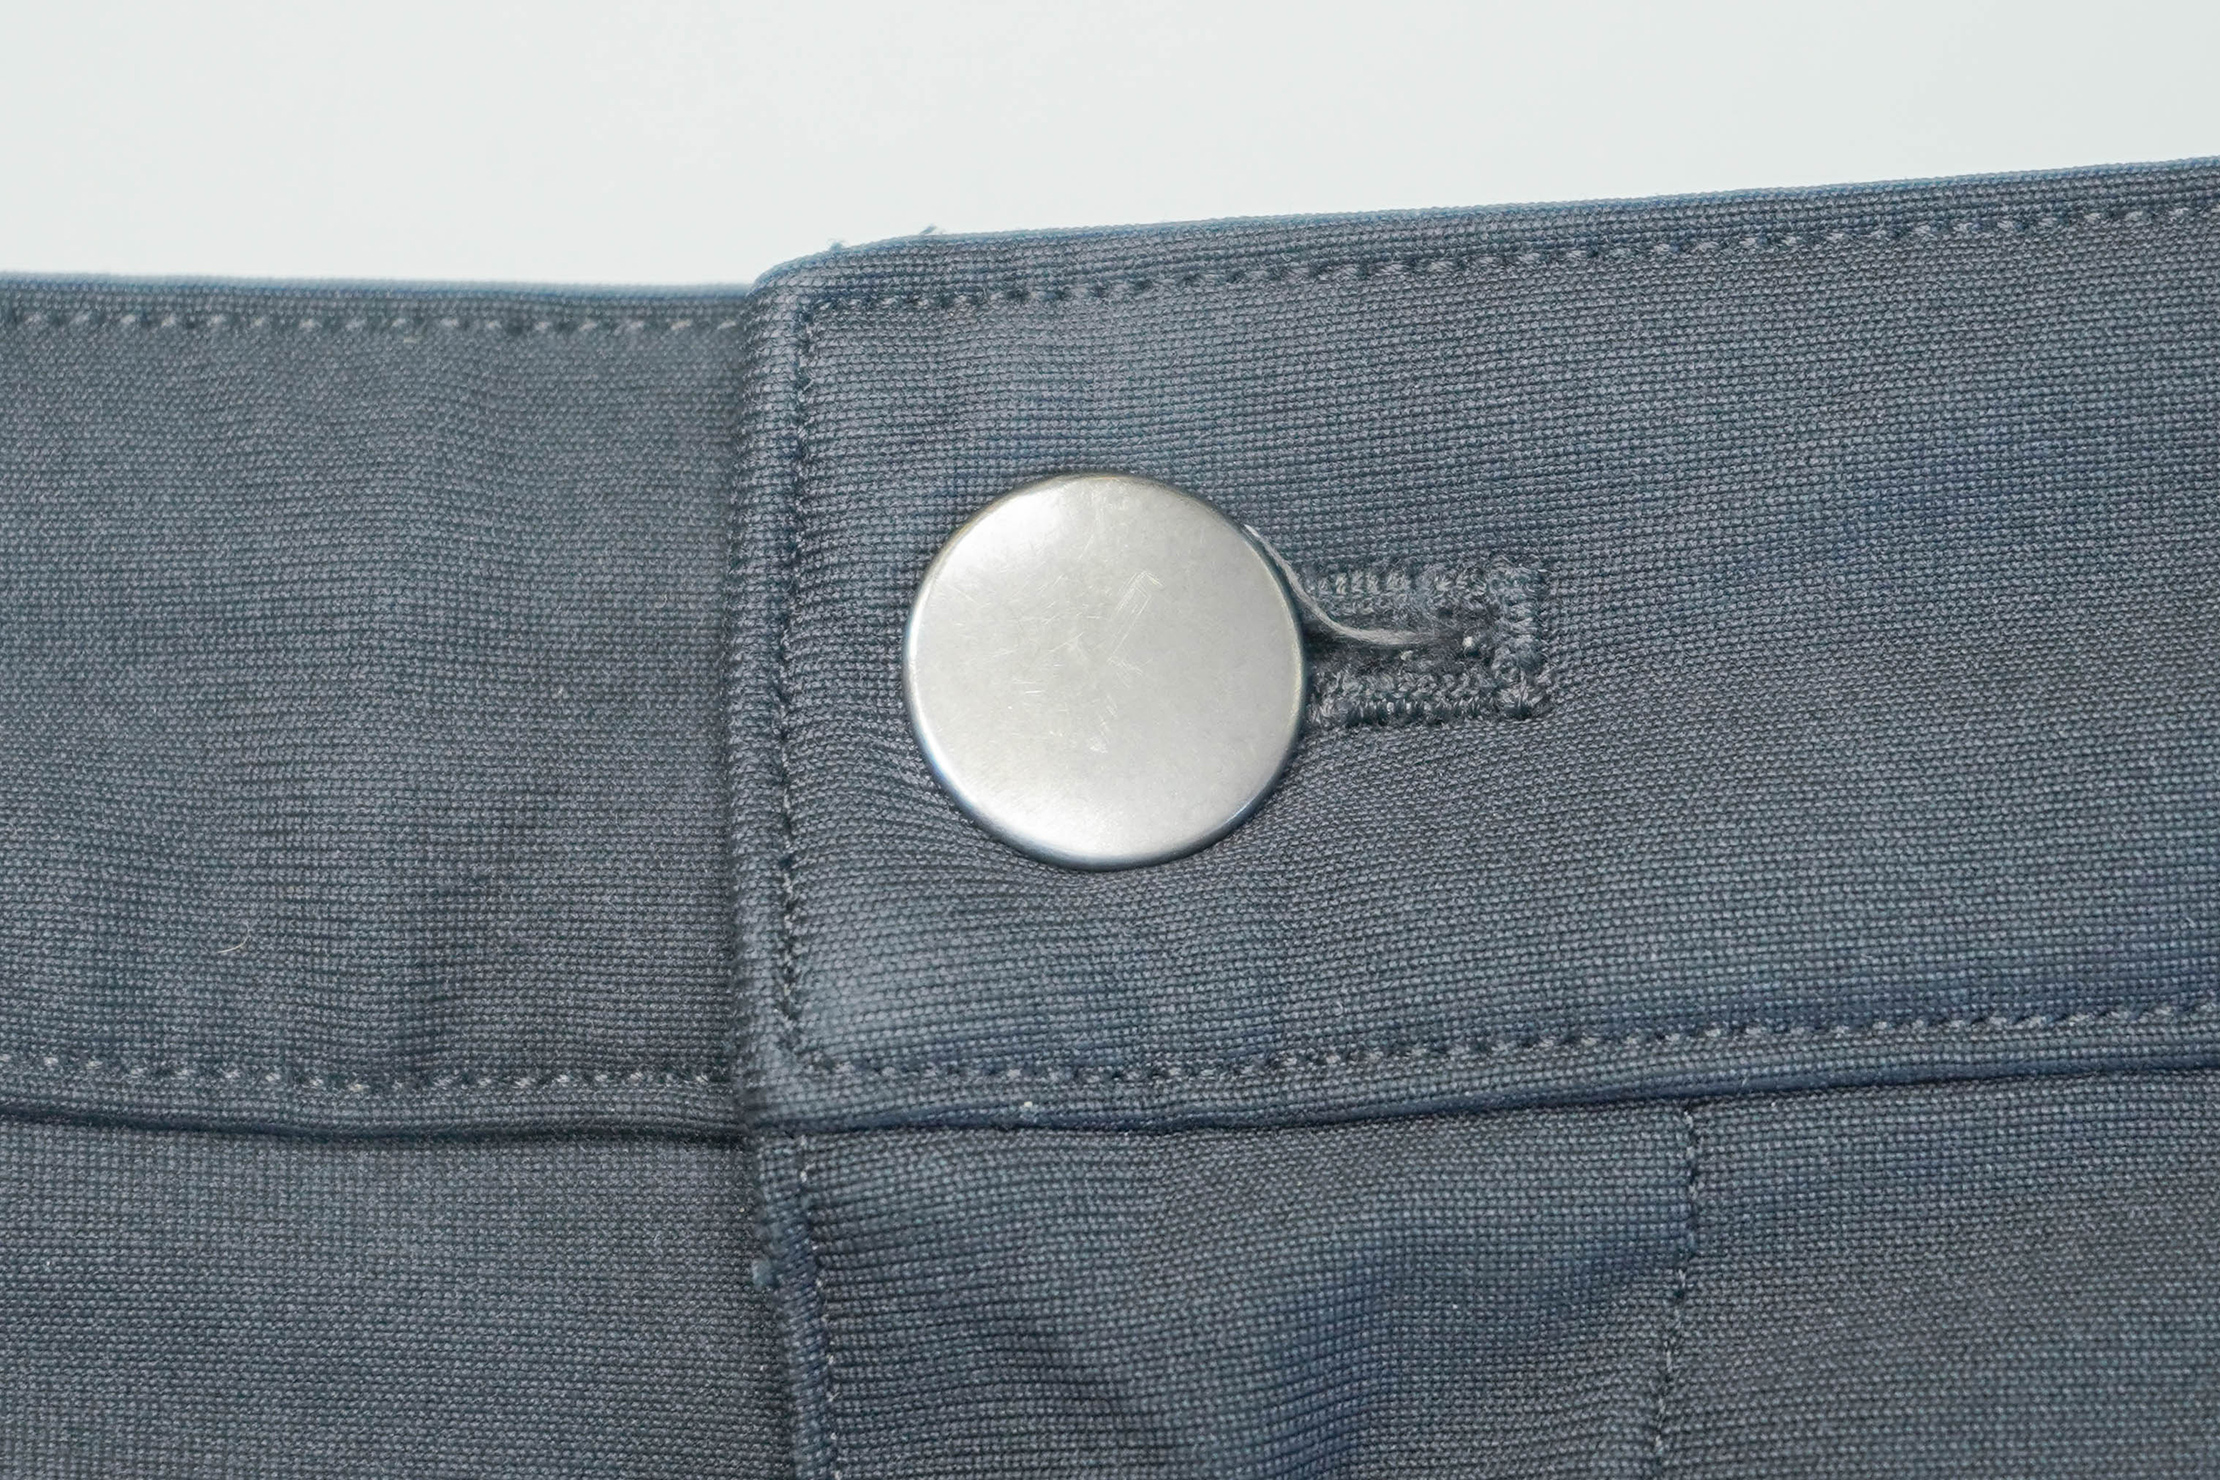 lululemon ABC Pant Slim Warpstreme Button